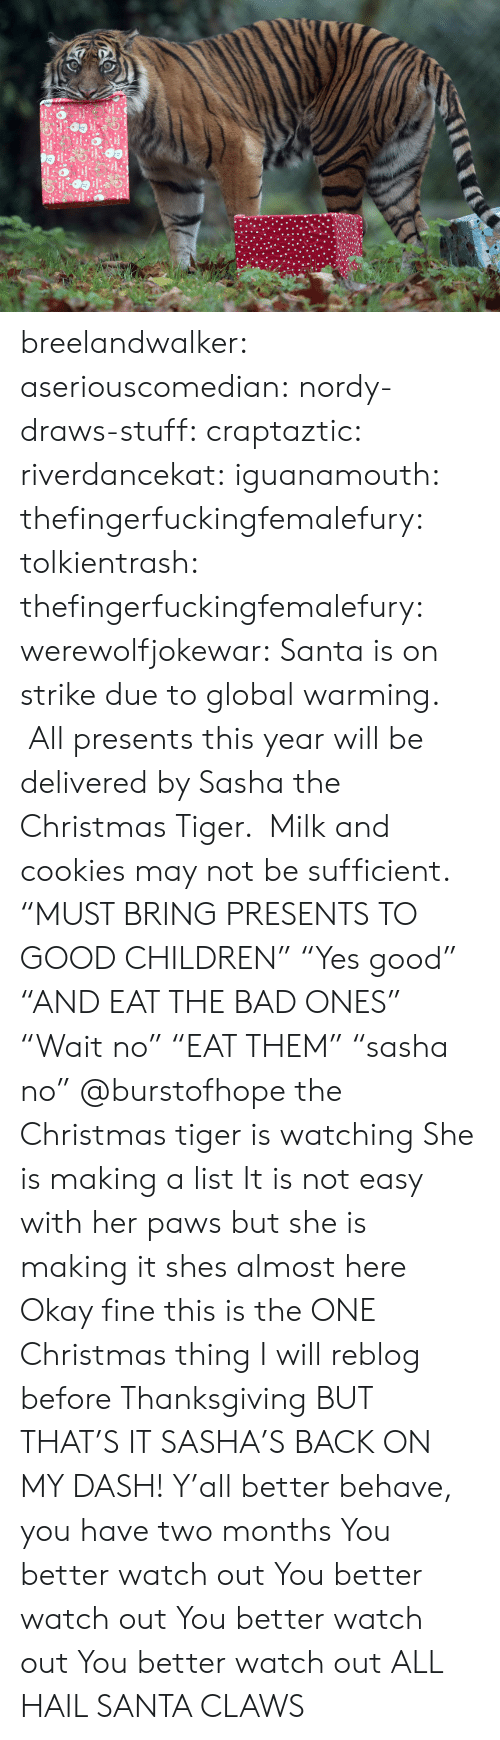 "Bad, Children, and Christmas: breelandwalker:  aseriouscomedian:  nordy-draws-stuff:   craptaztic:  riverdancekat:  iguanamouth:  thefingerfuckingfemalefury:  tolkientrash:  thefingerfuckingfemalefury:  werewolfjokewar:  Santa is on strike due to global warming.  All presents this year will be delivered by Sasha the Christmas Tiger.  Milk and cookies may not be sufficient.  ""MUST BRING PRESENTS TO GOOD CHILDREN"" ""Yes good"" ""AND EAT THE BAD ONES""  ""Wait no"" ""EAT THEM"" ""sasha no""   @burstofhope the Christmas tiger is watching  She is making a list  It is not easy with her paws but she is making it   shes almost here   Okay fine this is the ONE Christmas thing I will reblog before Thanksgiving BUT THAT'S IT  SASHA'S BACK ON MY DASH!  Y'all better behave, you have two months   You better watch out You better watch out You better watch out You better watch out  ALL HAIL SANTA CLAWS"